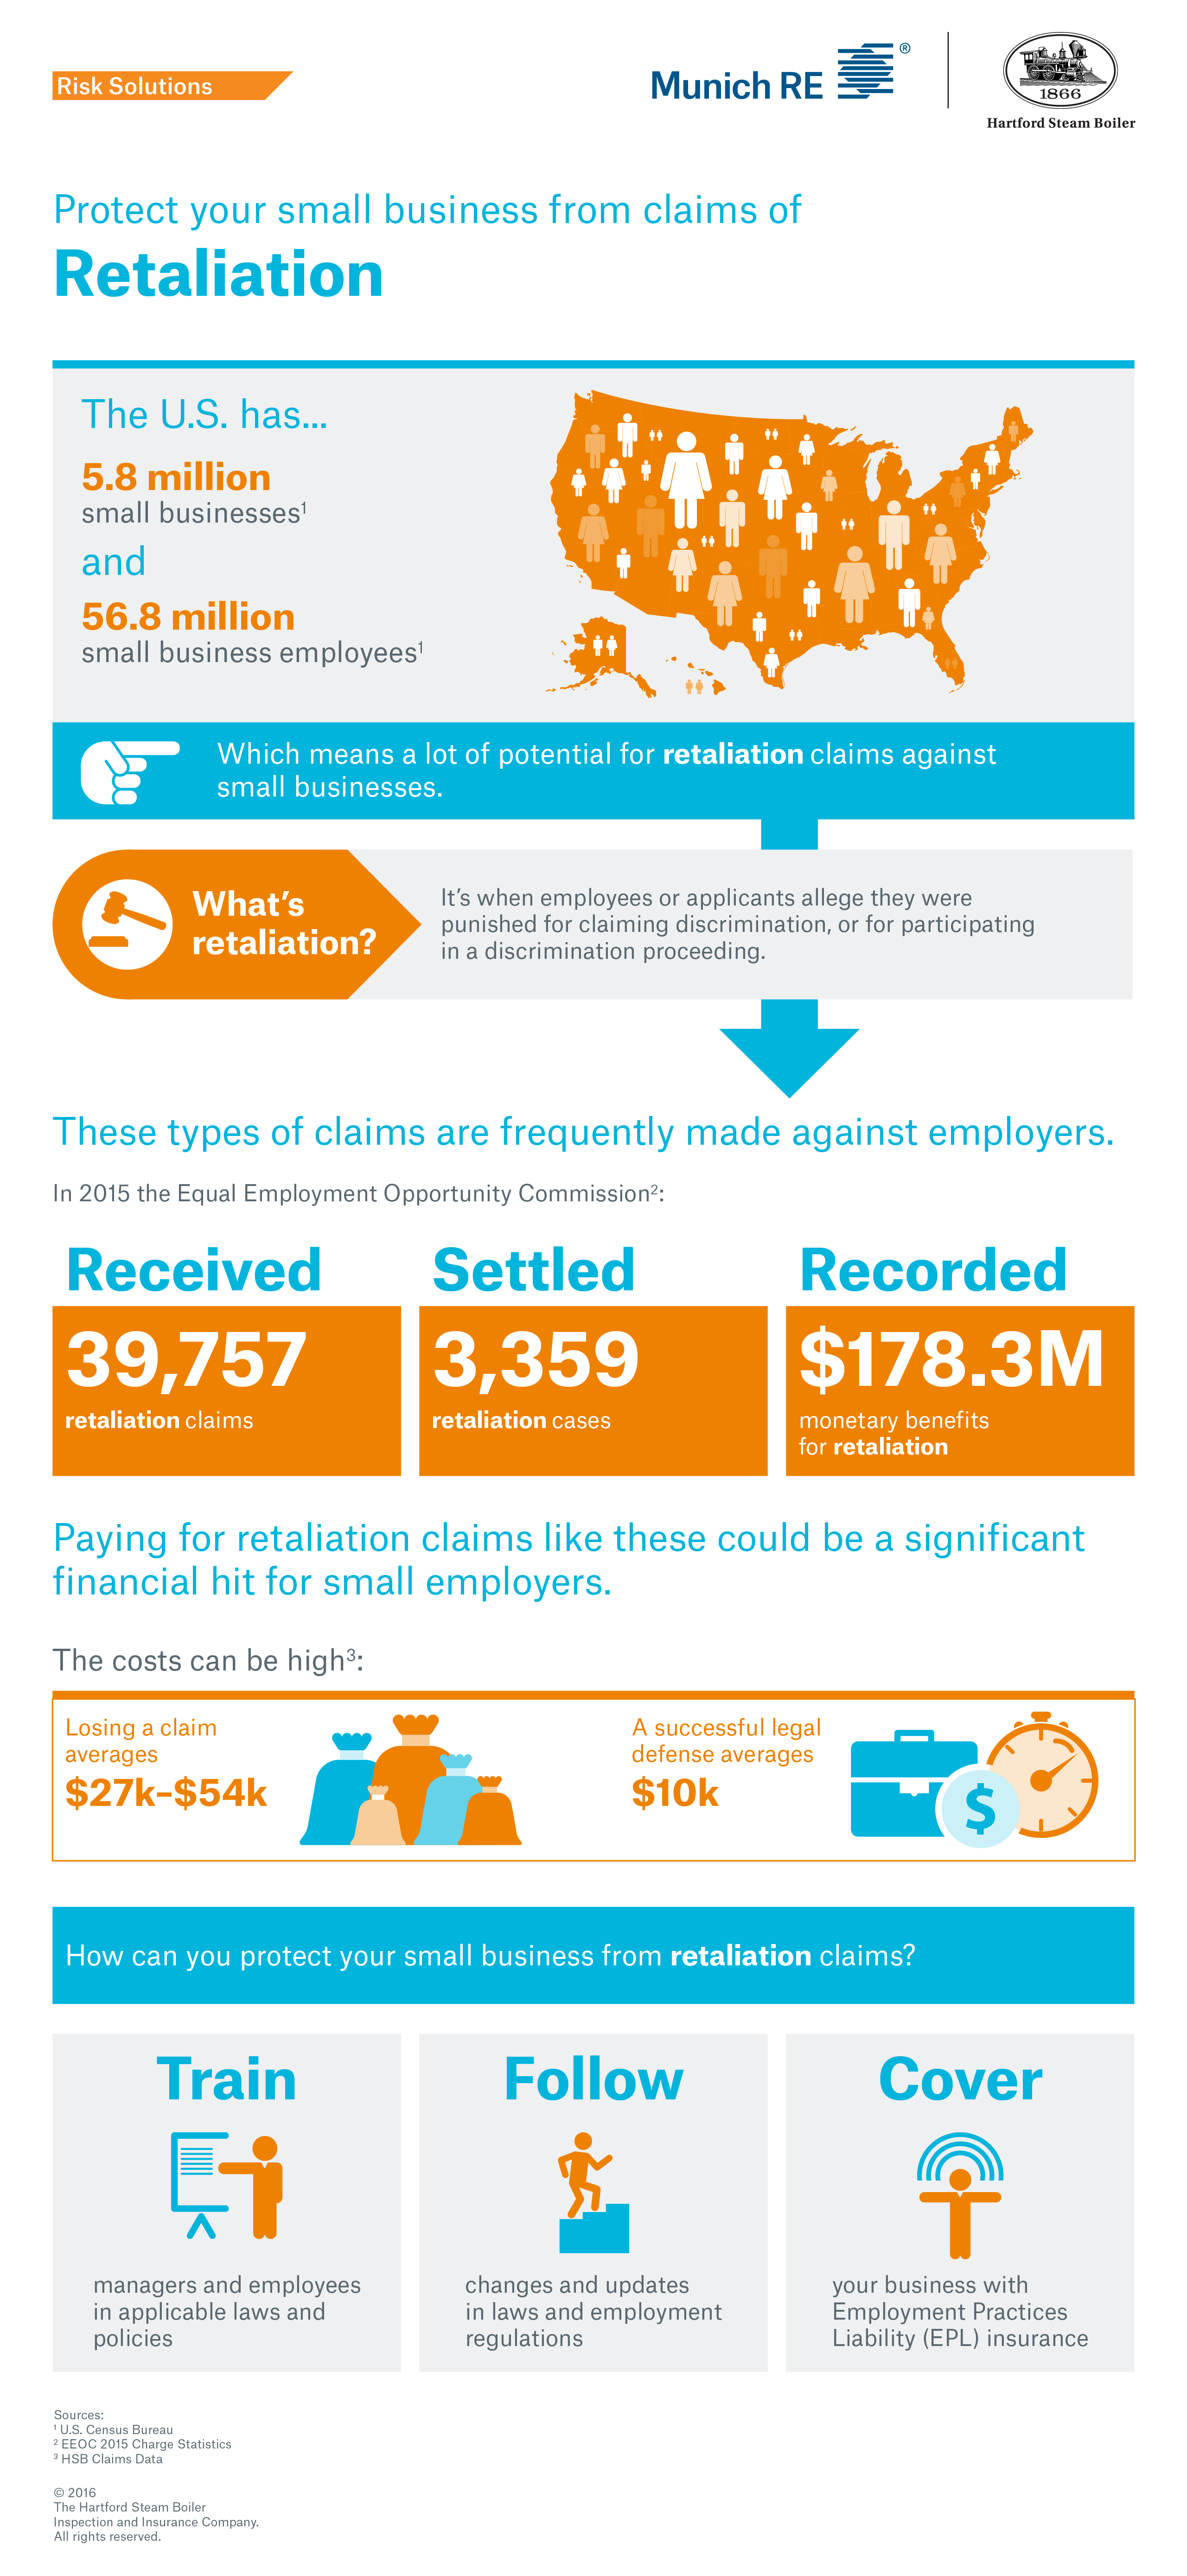 Protect your small business from claims of Retaliation